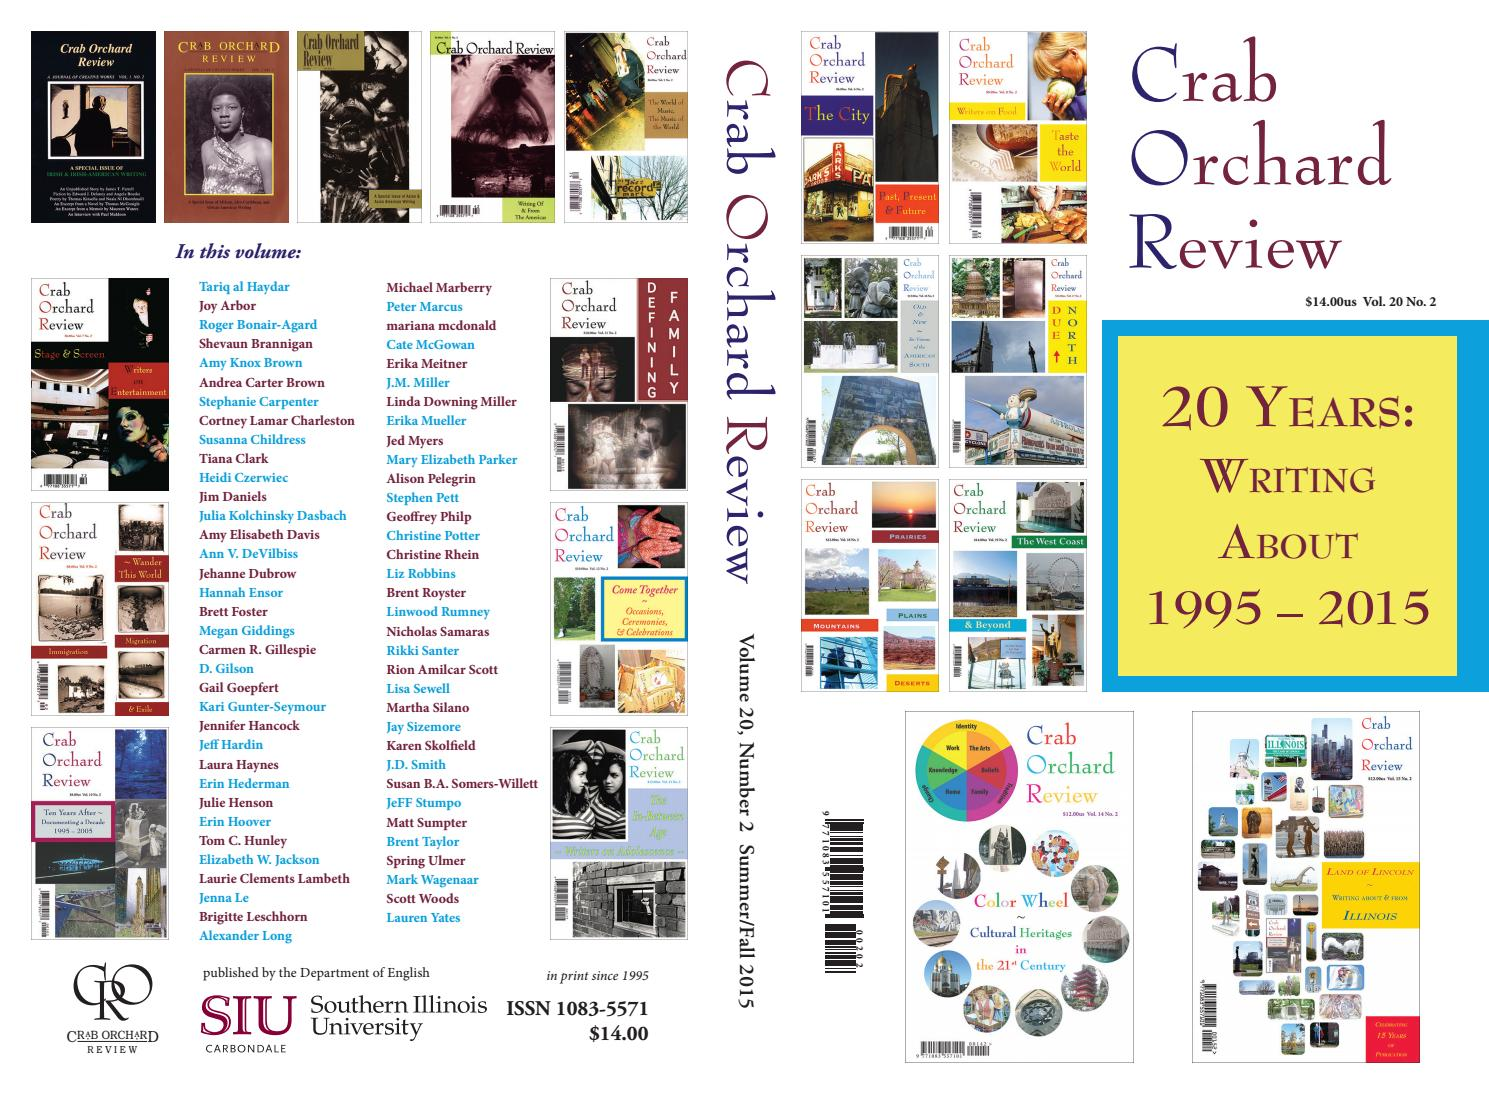 b1c412cda6b Crab Orchard Review Vol 20 No 2 S F 2015 by Crab Orchard Review - issuu